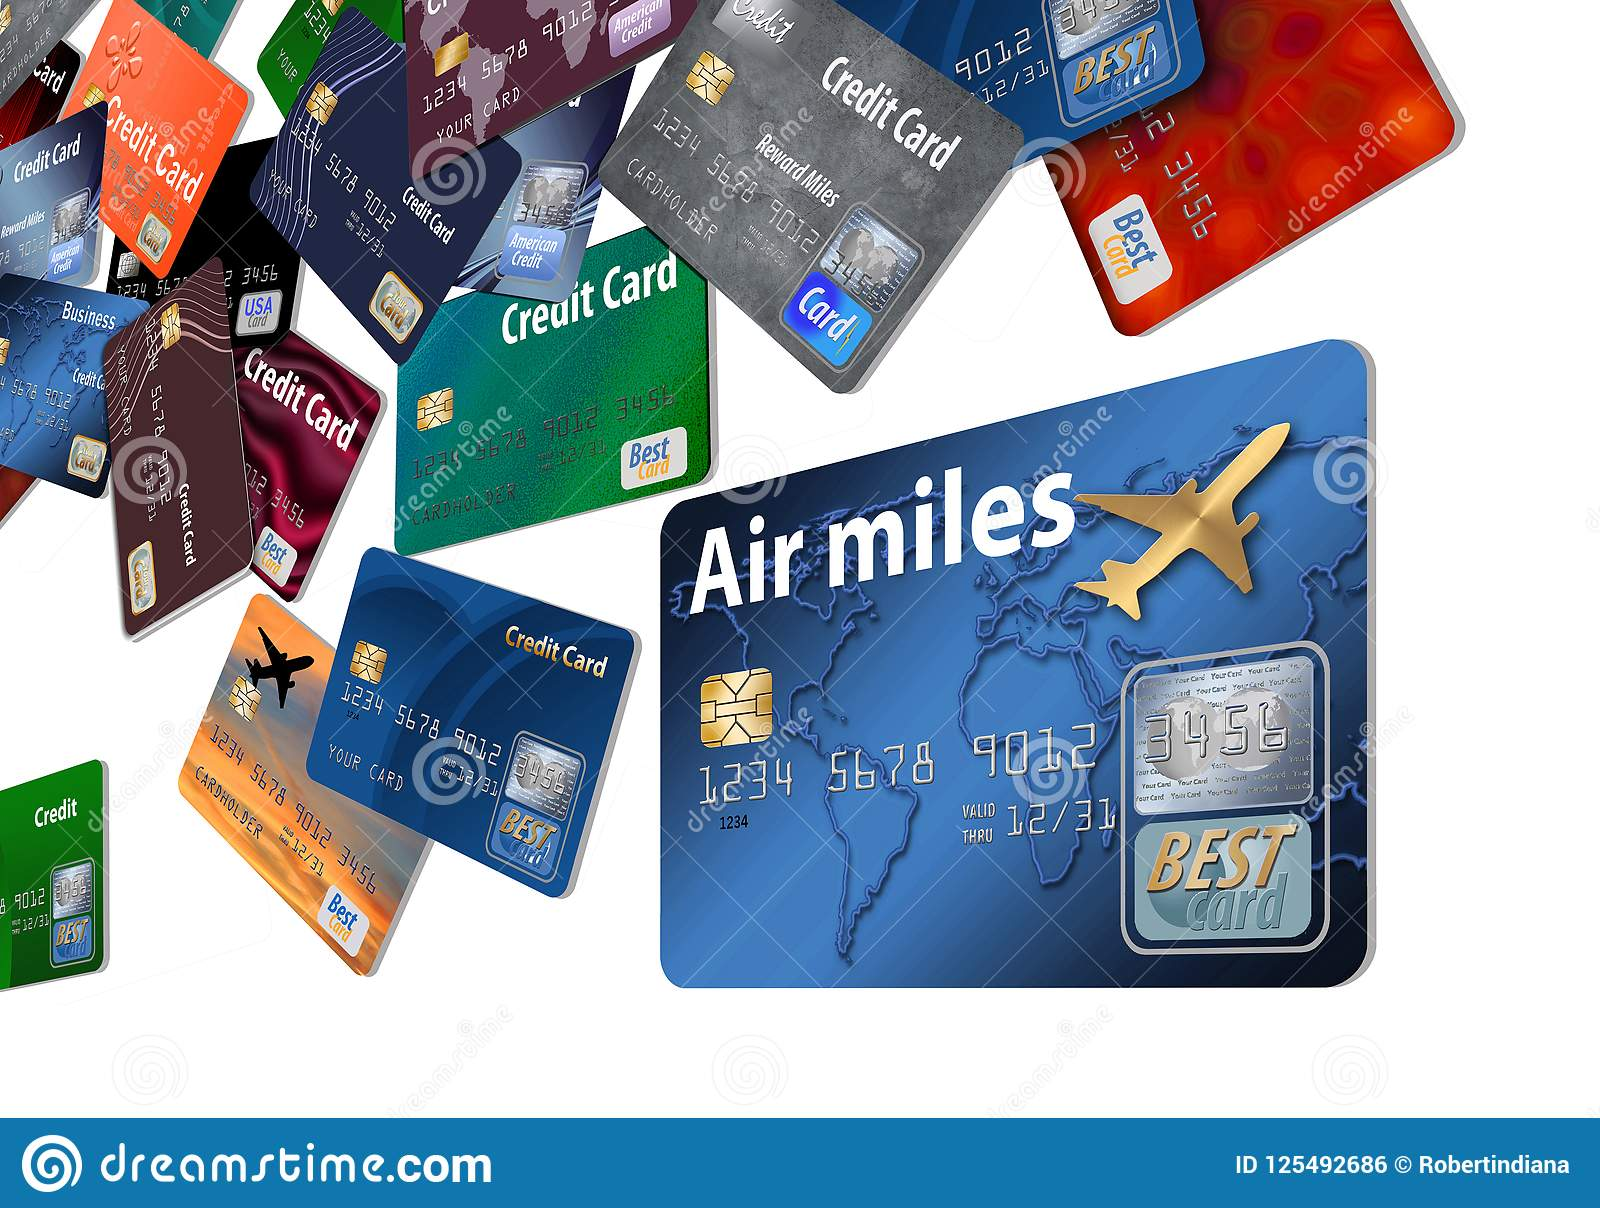 Here is an air rewards credit card with airline credit cards floating in the air.